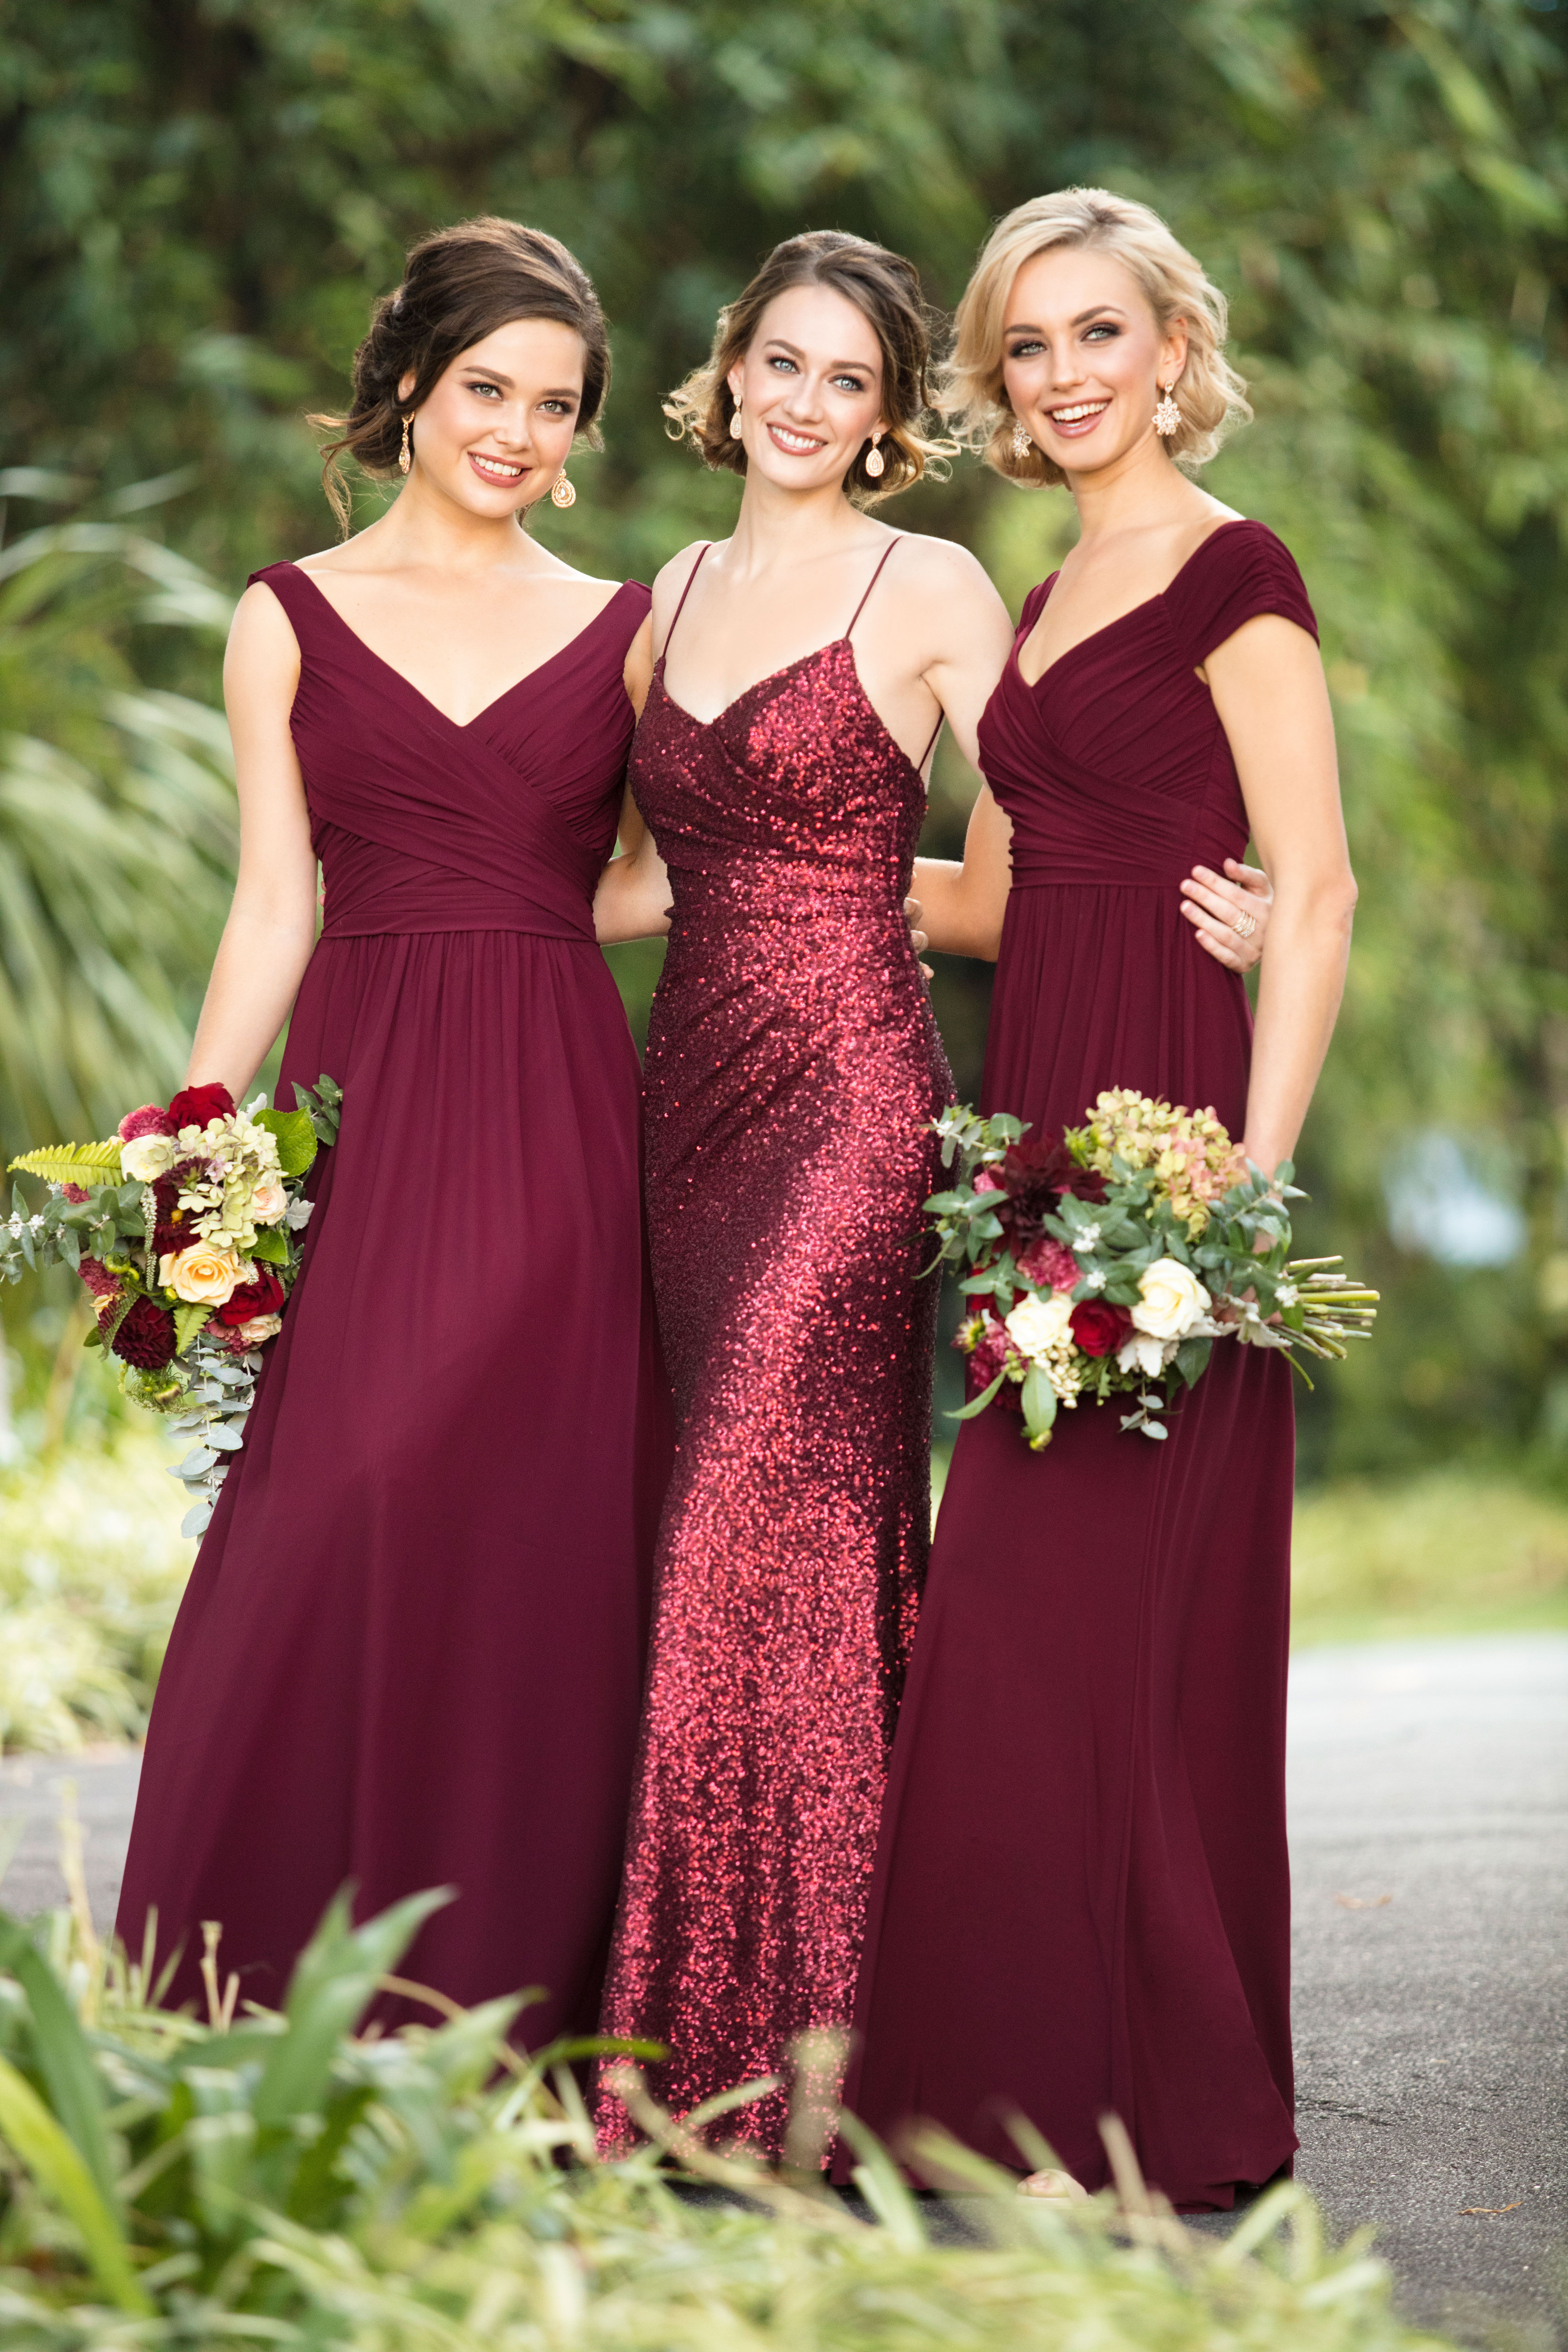 Trends We Love Mixed Berry Bridal Parties Burgundy